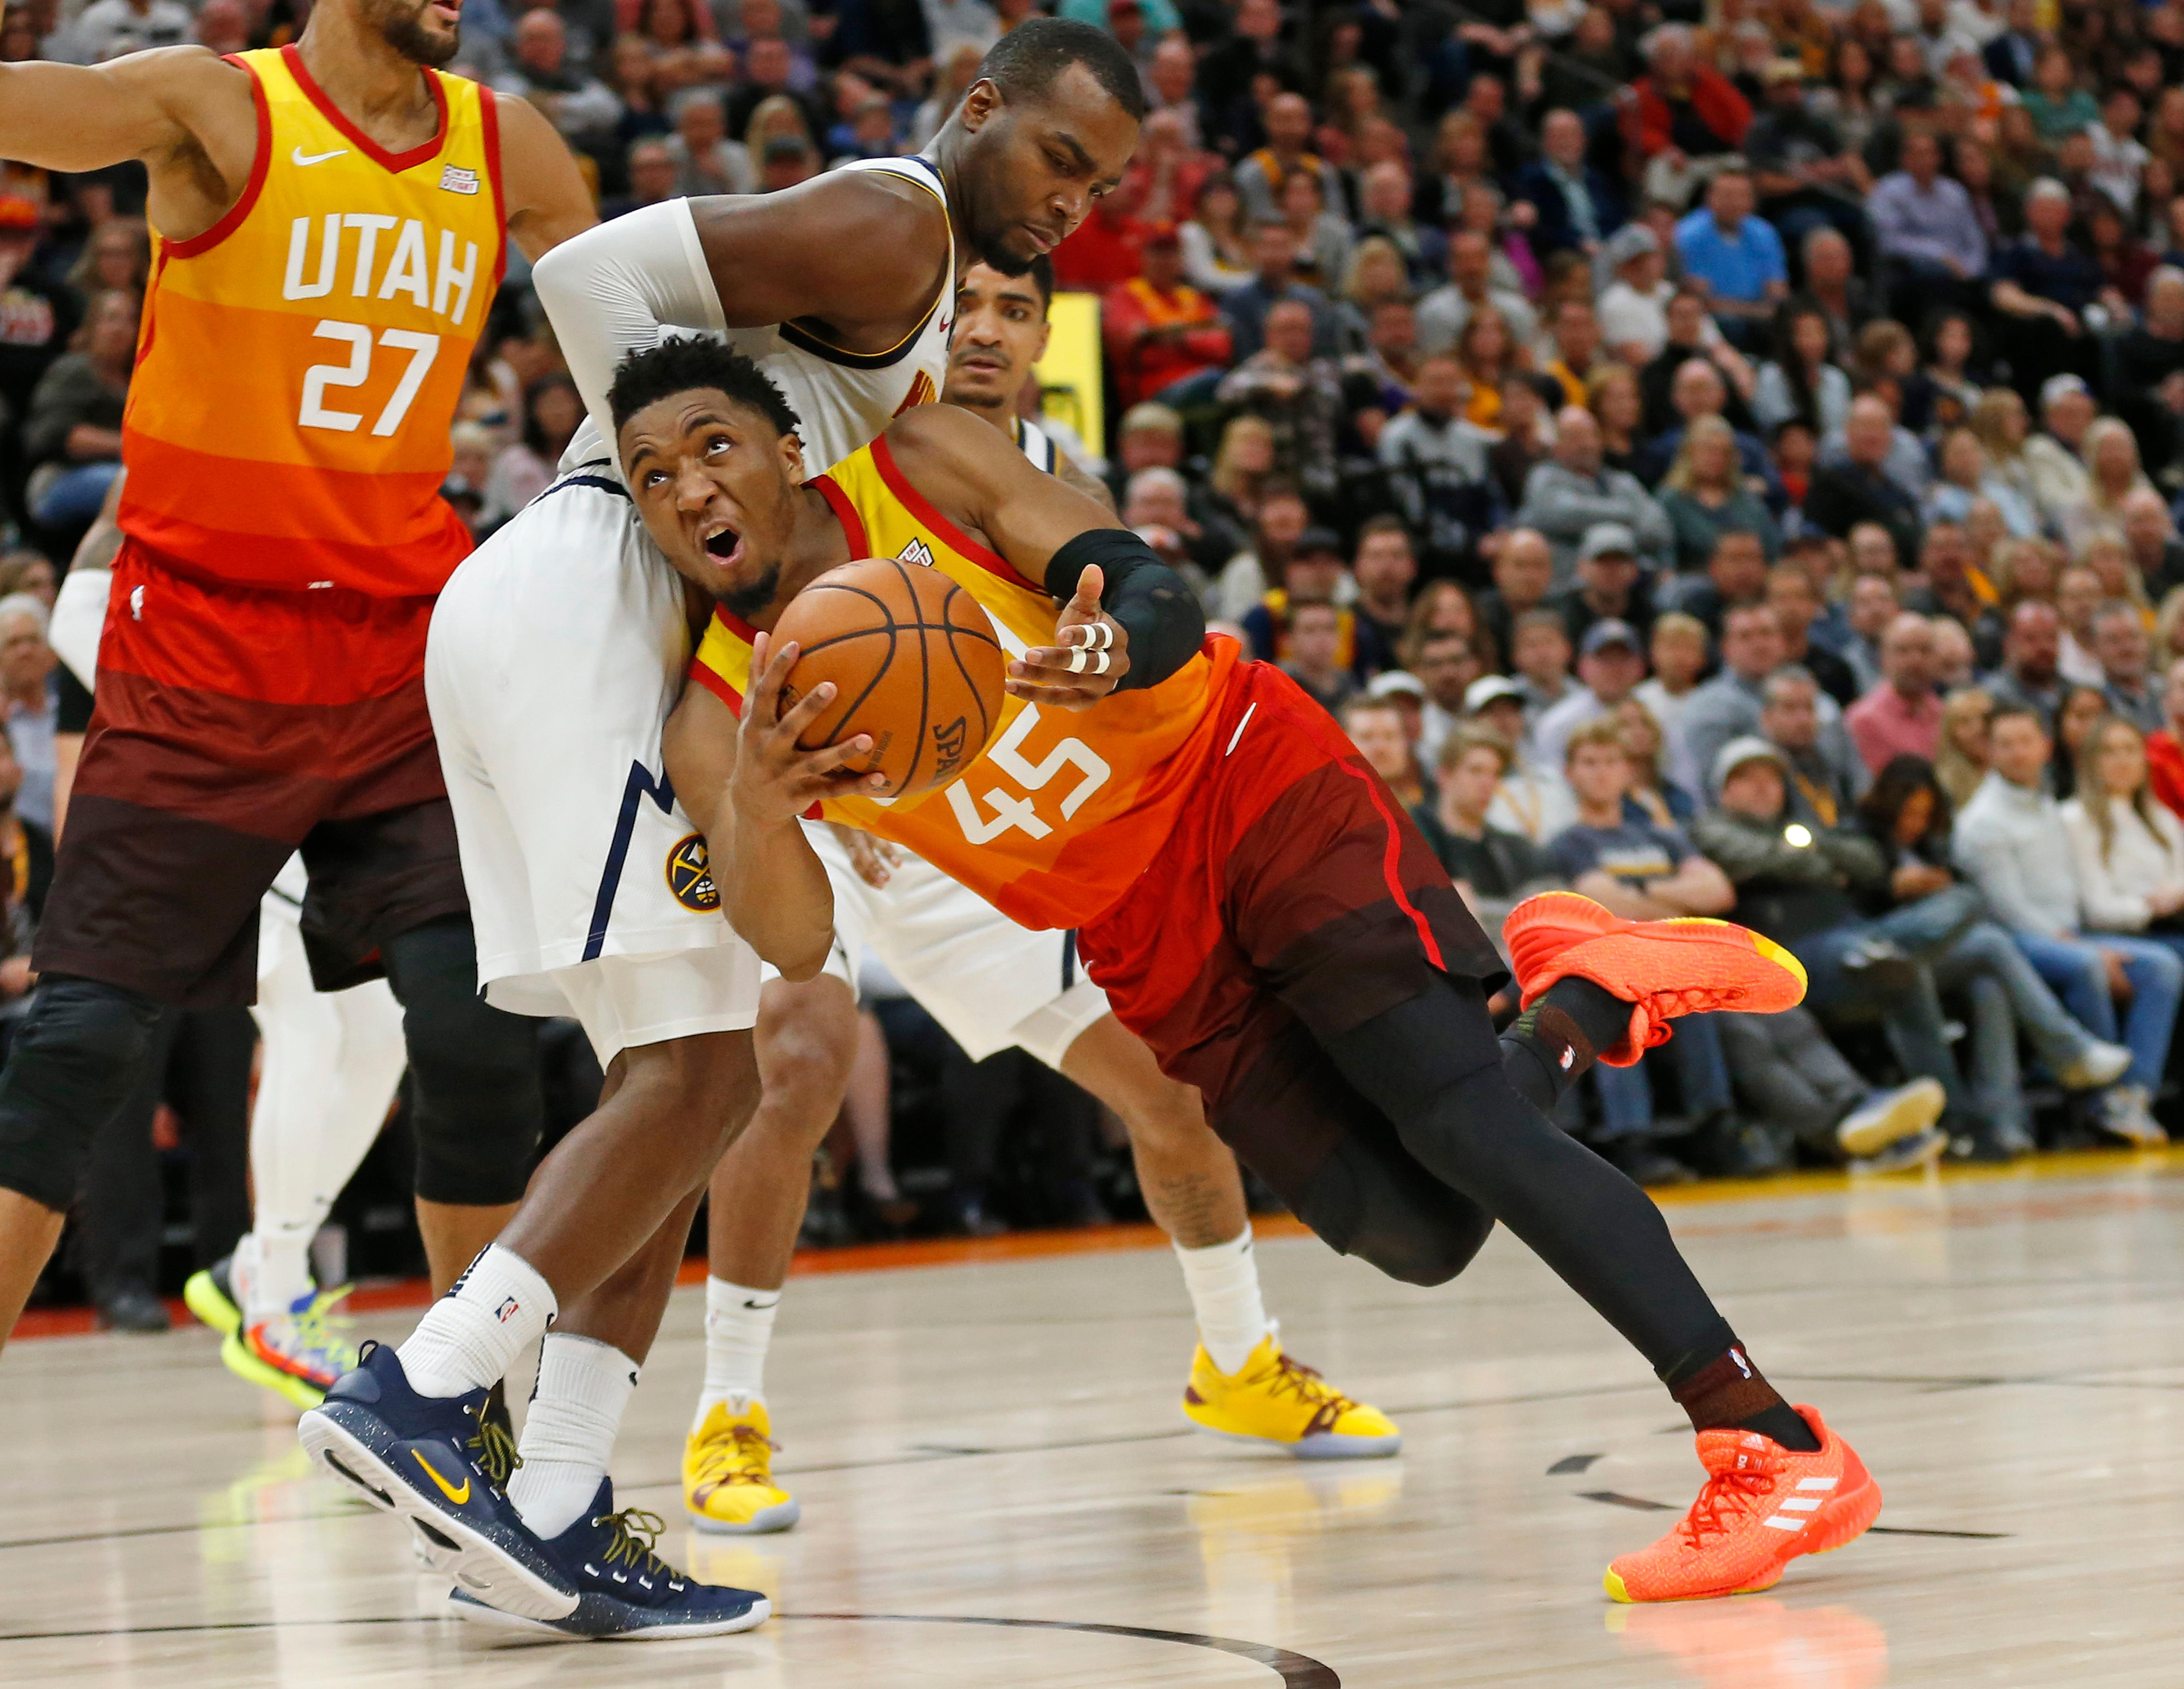 Utah Jazz guard Donovan Mitchell (45) looks to shoot as Denver Nuggets forward Paul Millsap, rear, defends during the second half during an NBA basketball game Tuesday, April 9, 2019, in Salt Lake City. (AP Photo/Rick Bowmer)